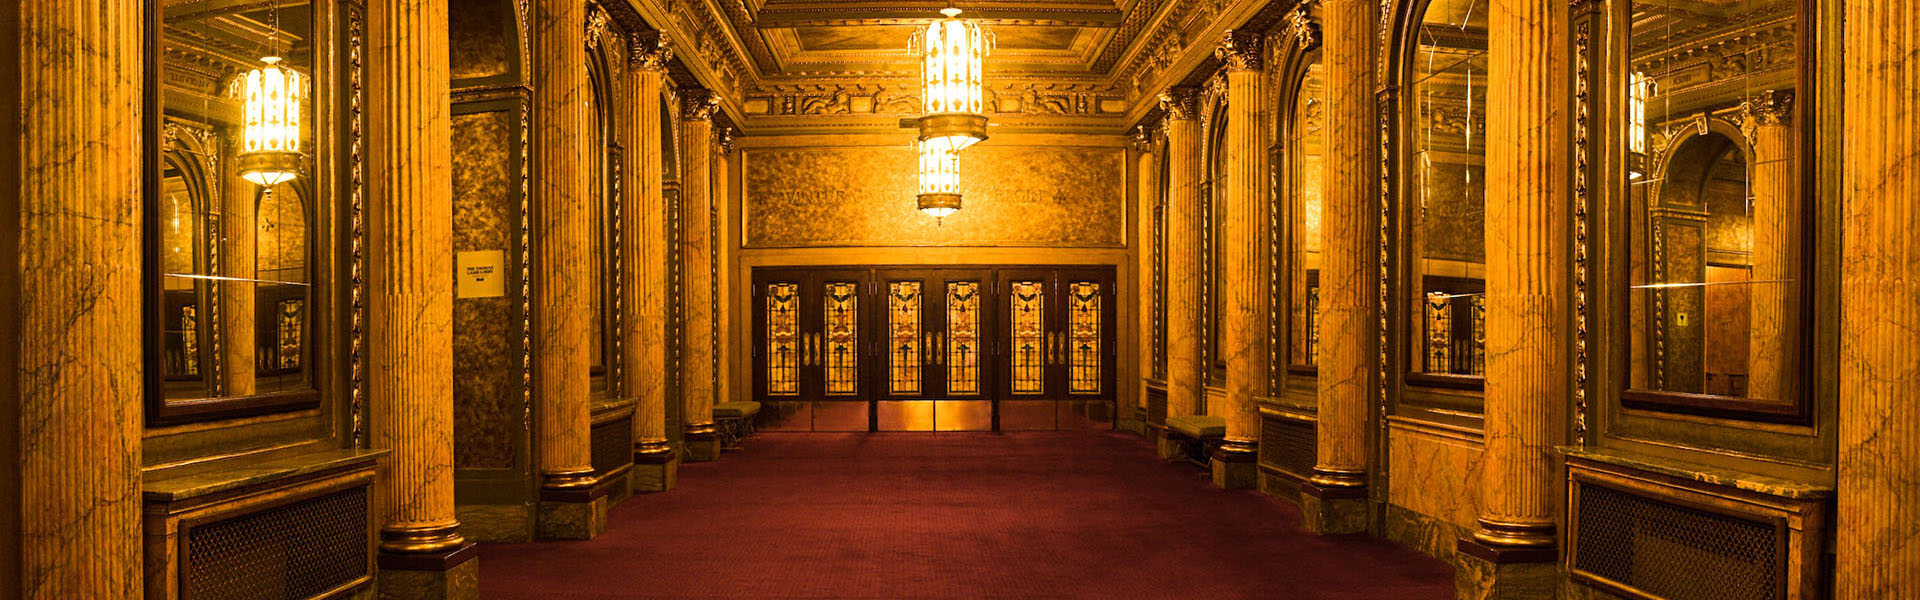 Lobby at the Elgin and Winter Garden Theatre Centre, Toronto